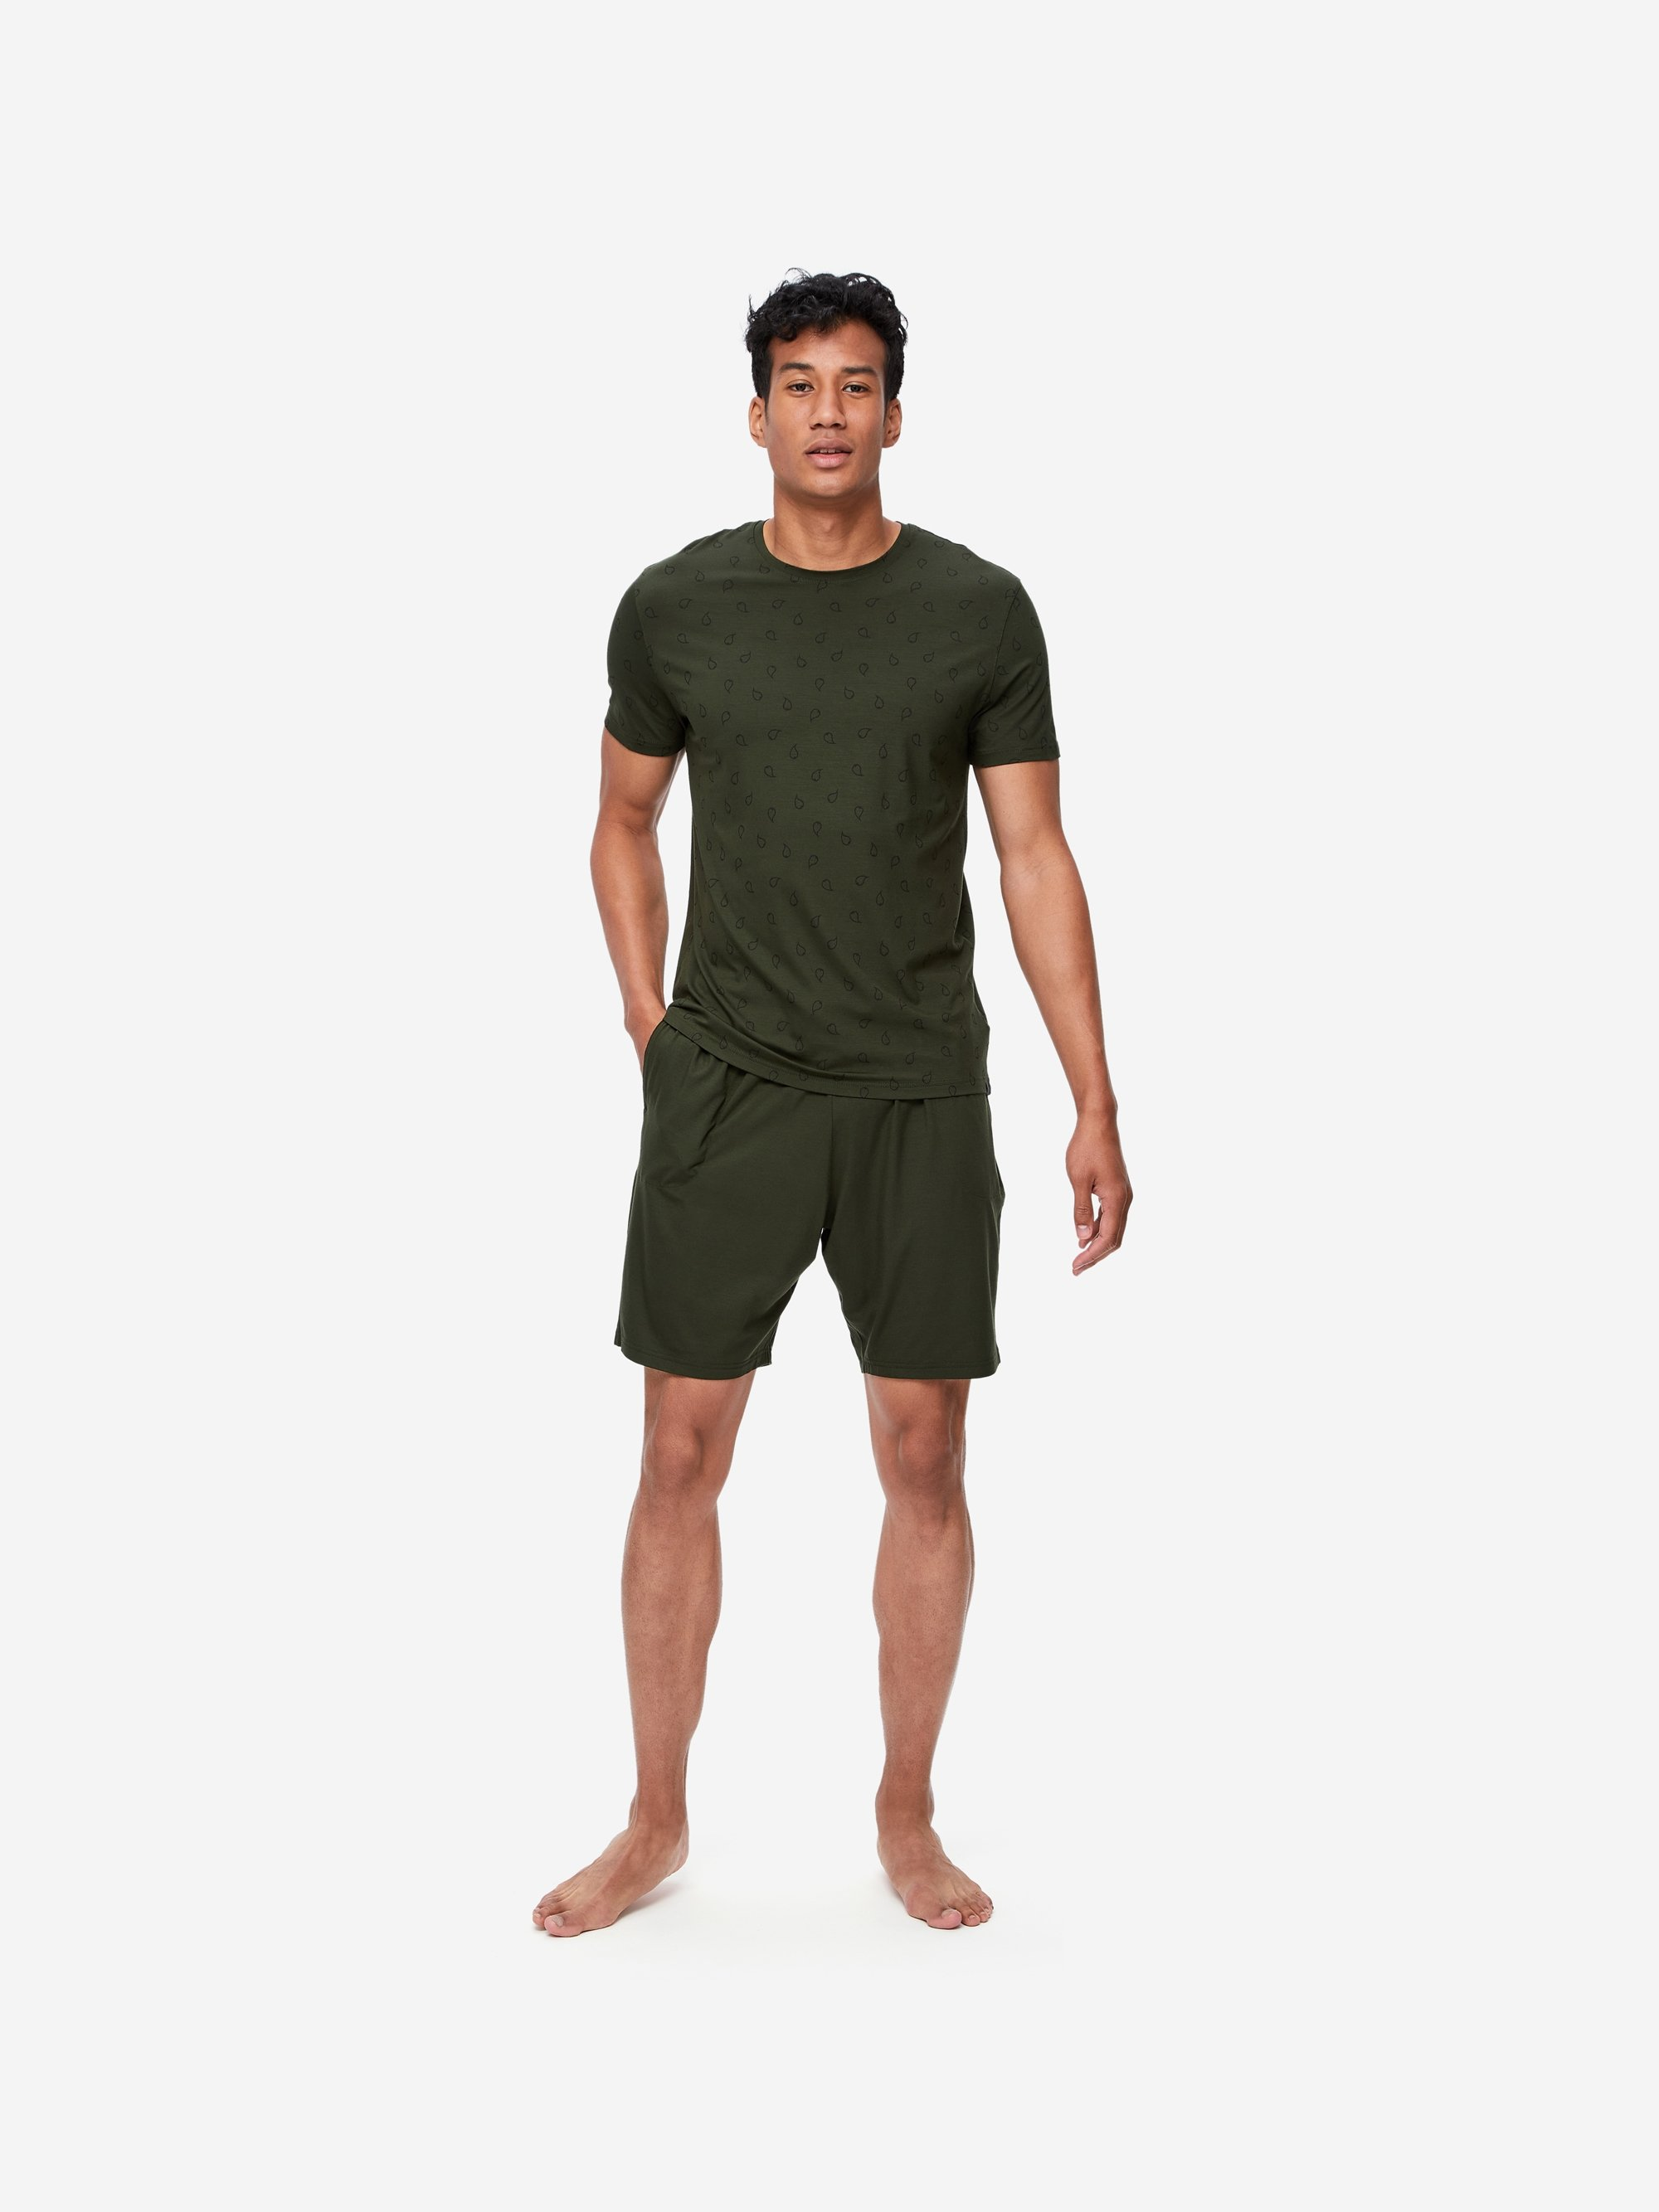 Men's Jersey Shorts Basel 9 Micro Modal Stretch Green